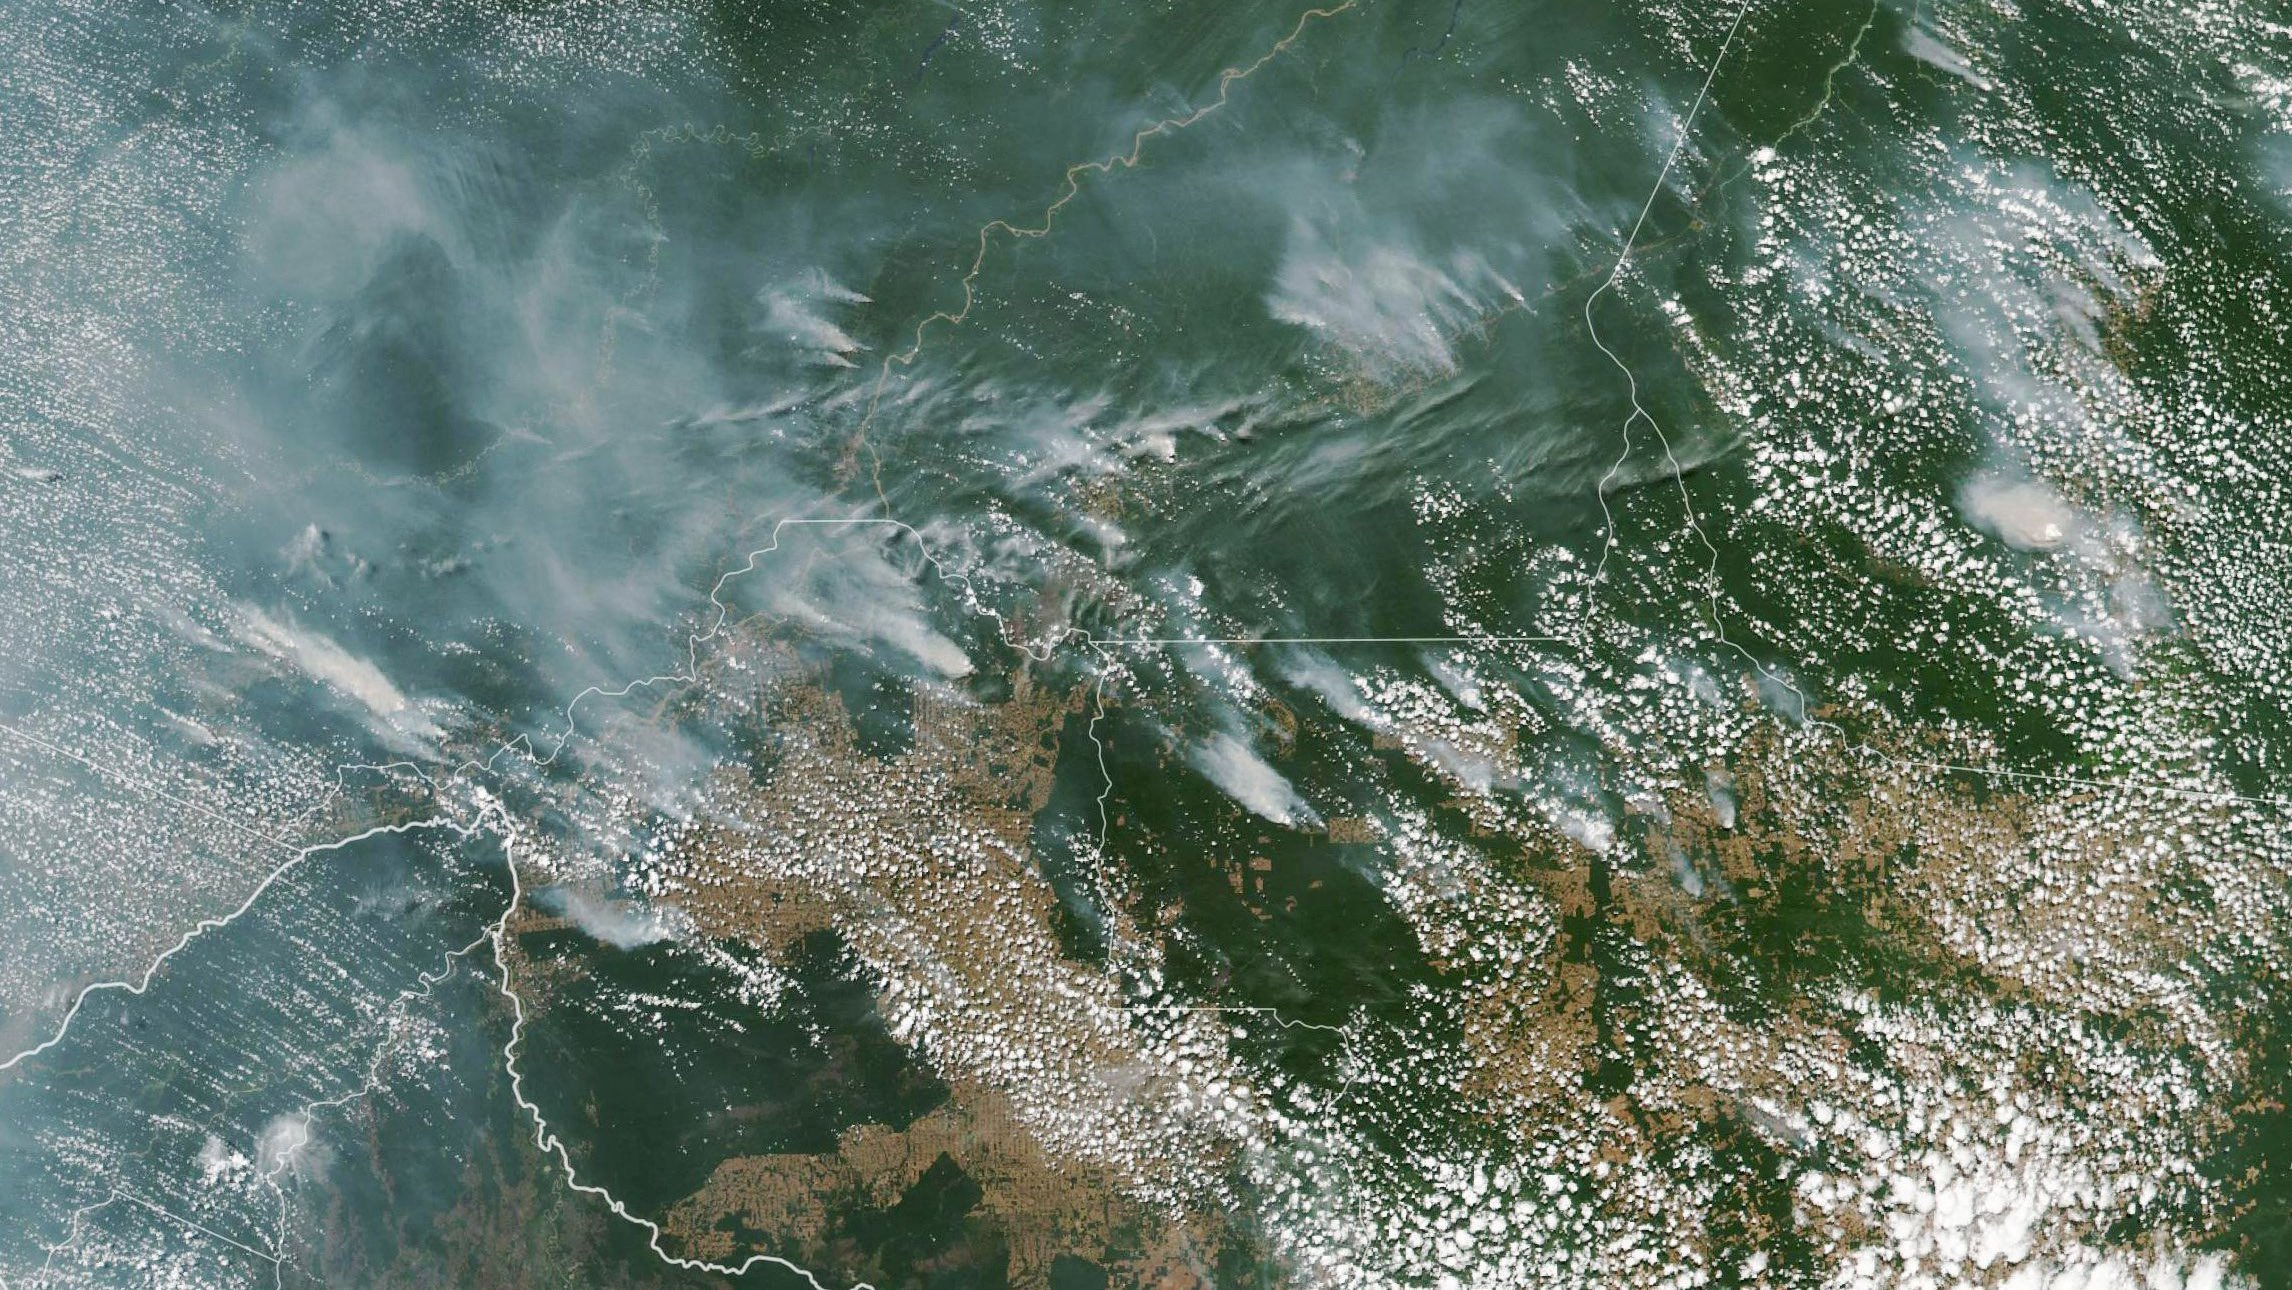 Fires are raging at a record rate in Brazil's Amazon rainforest, and scientists warn it could strike a devastating blow to the fight against climate change. (Credit: National Institute for Space Research via CNN)